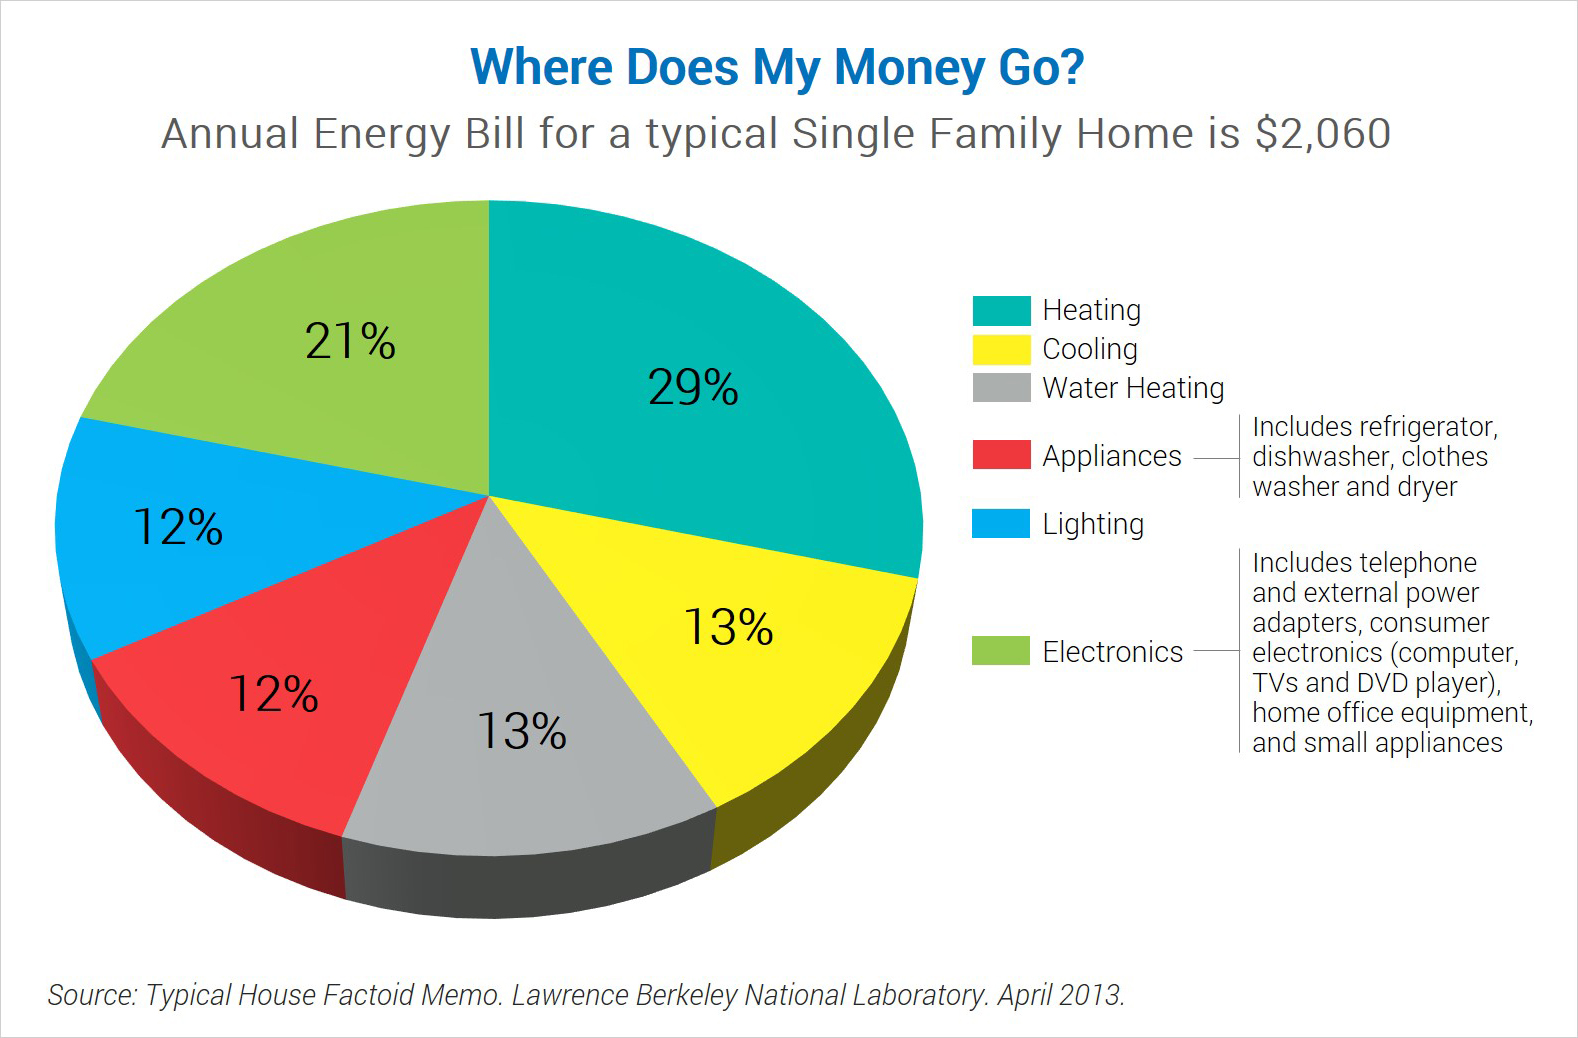 Typical House Energy Use